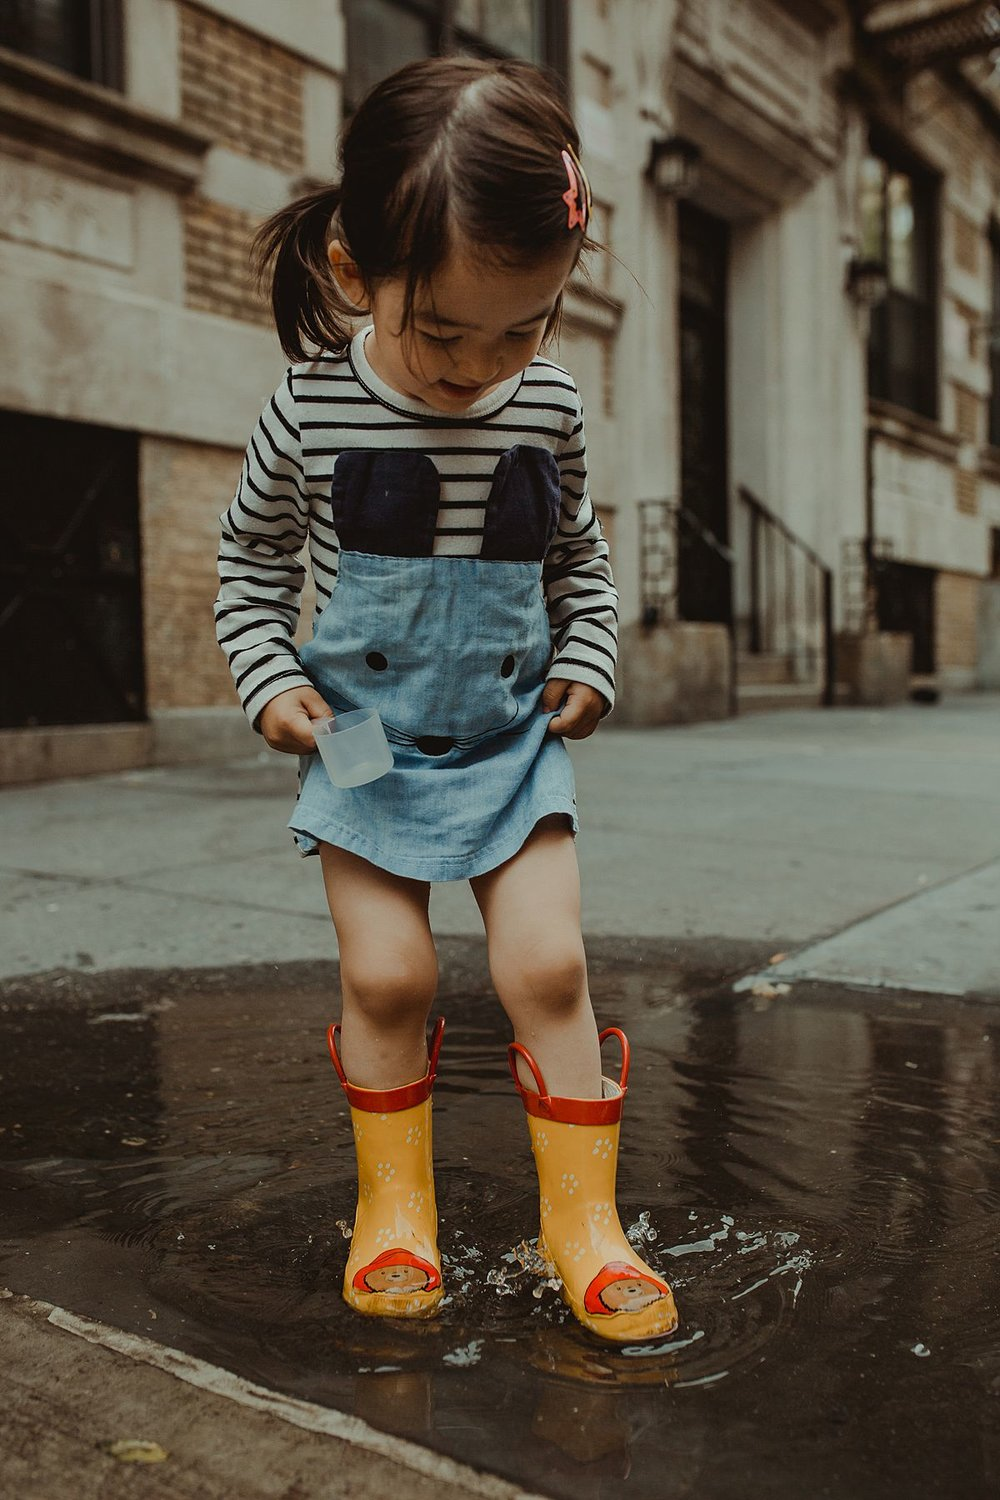 daughter splashing in puddle in yellow paddington bear rainboots. krystil mcdowall photography captures fun childhood moments